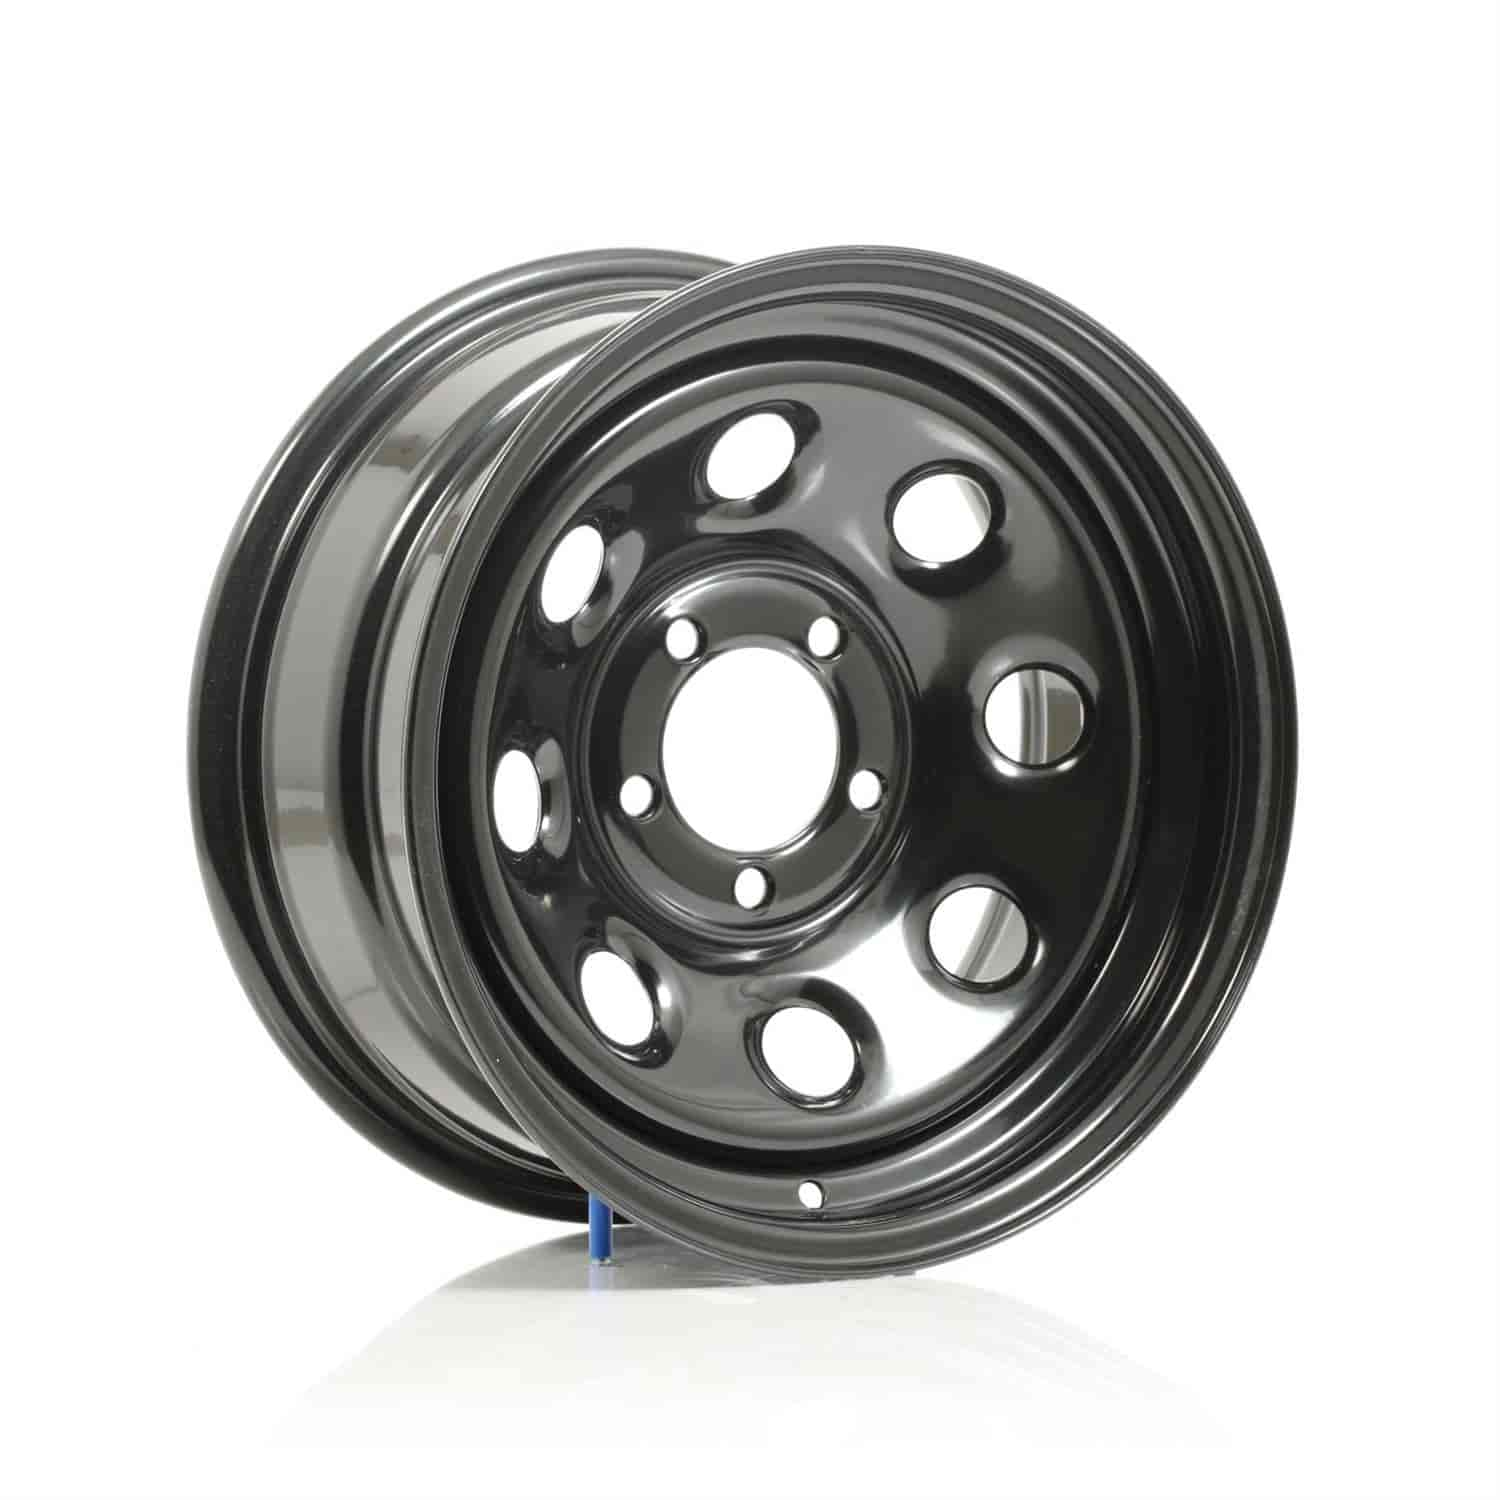 Cragar 3978981 - Cragar Black Soft 8 Wheels